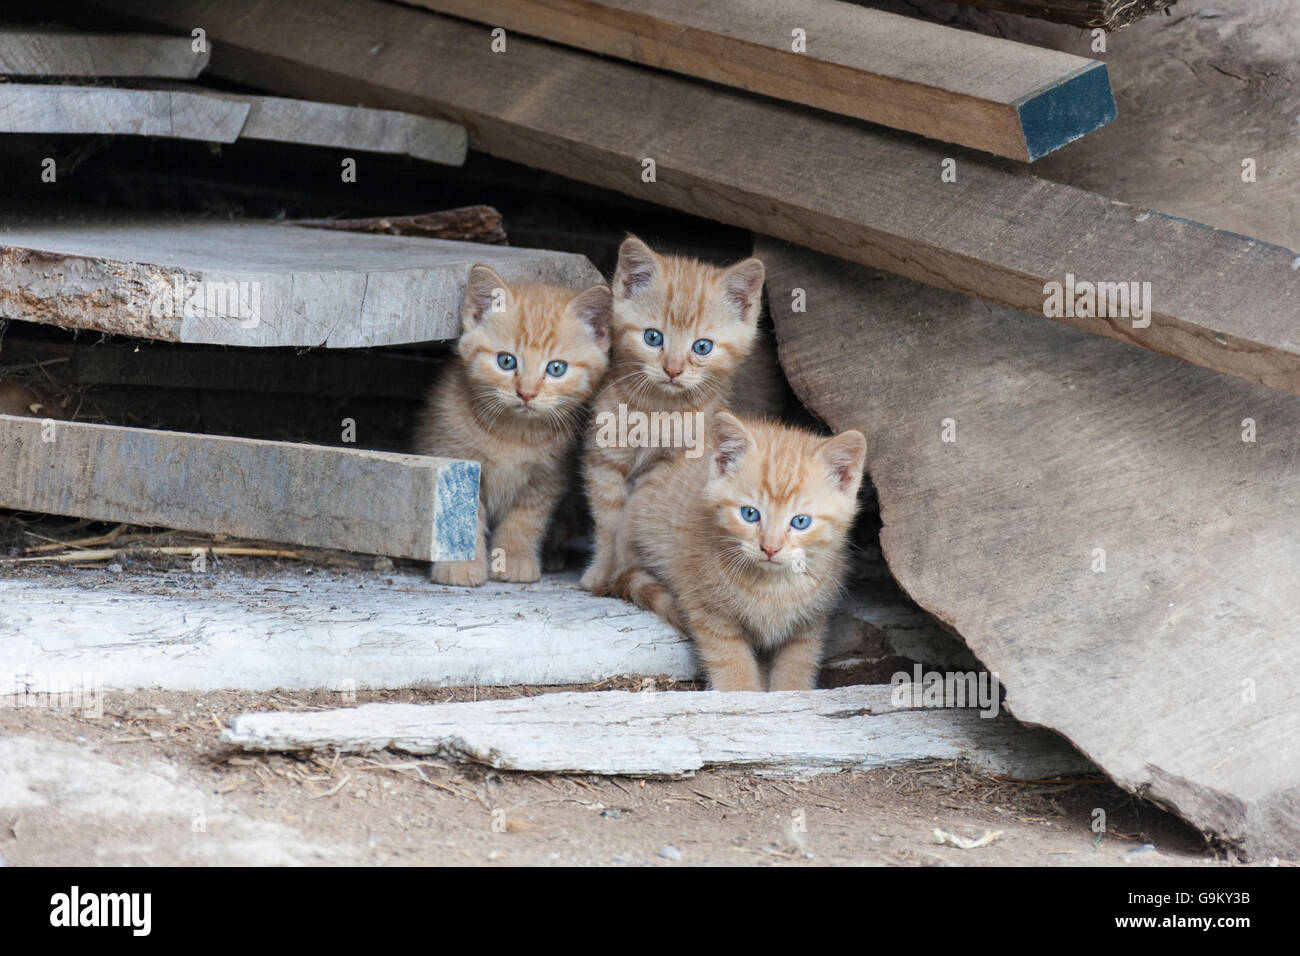 Ginger kittens - Stock Image